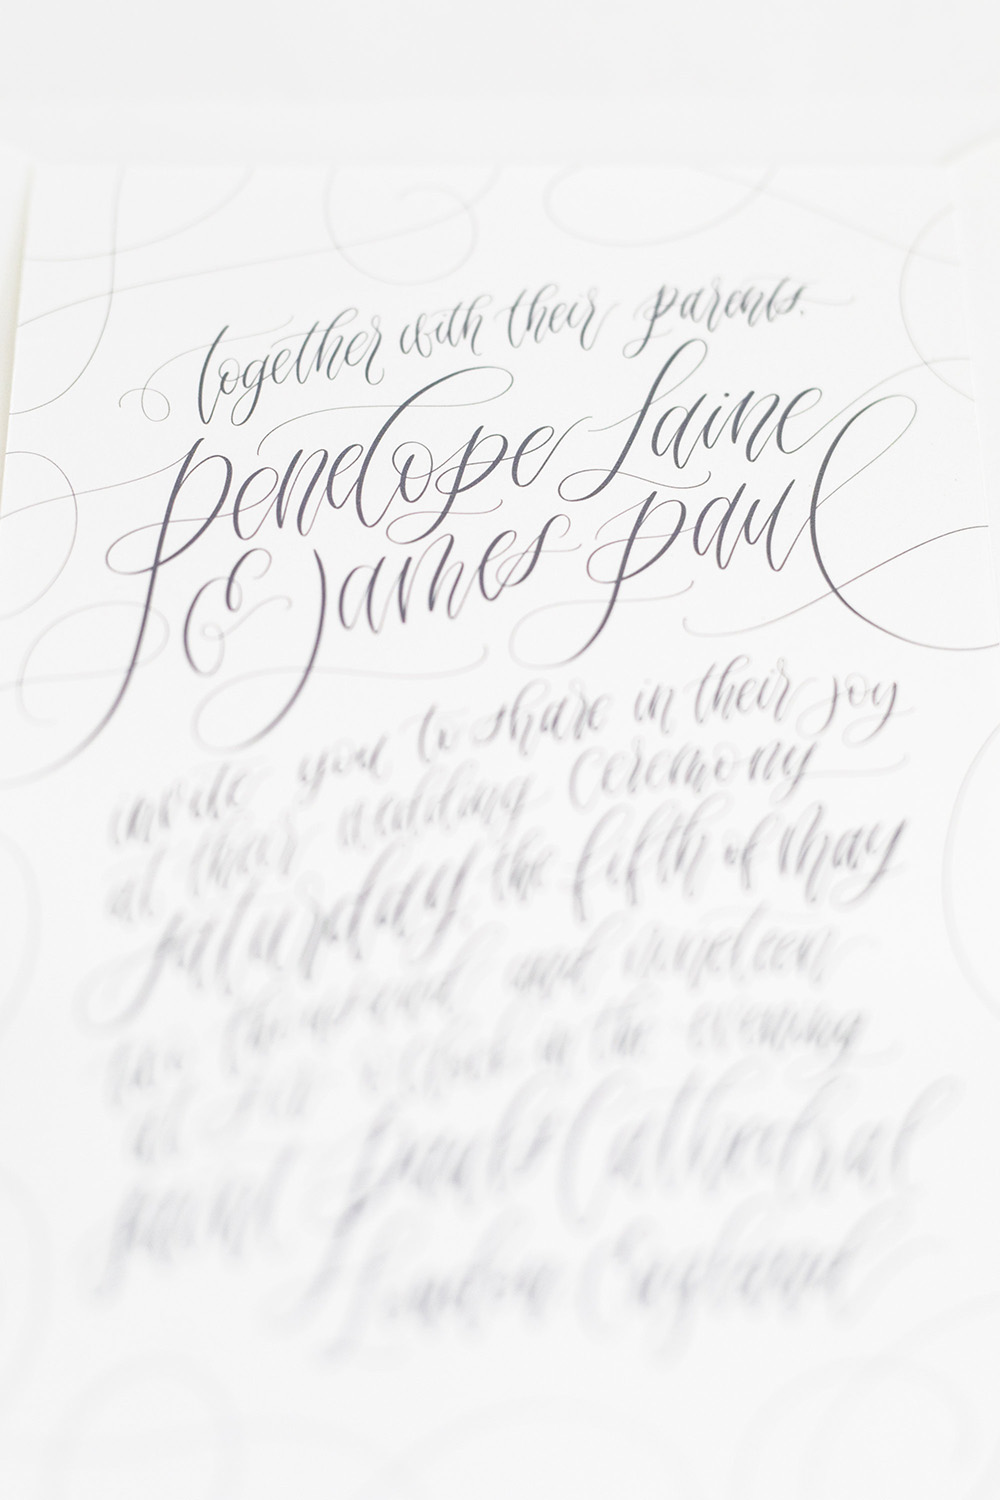 Honey Bee Letters hand made calligraphy invitations